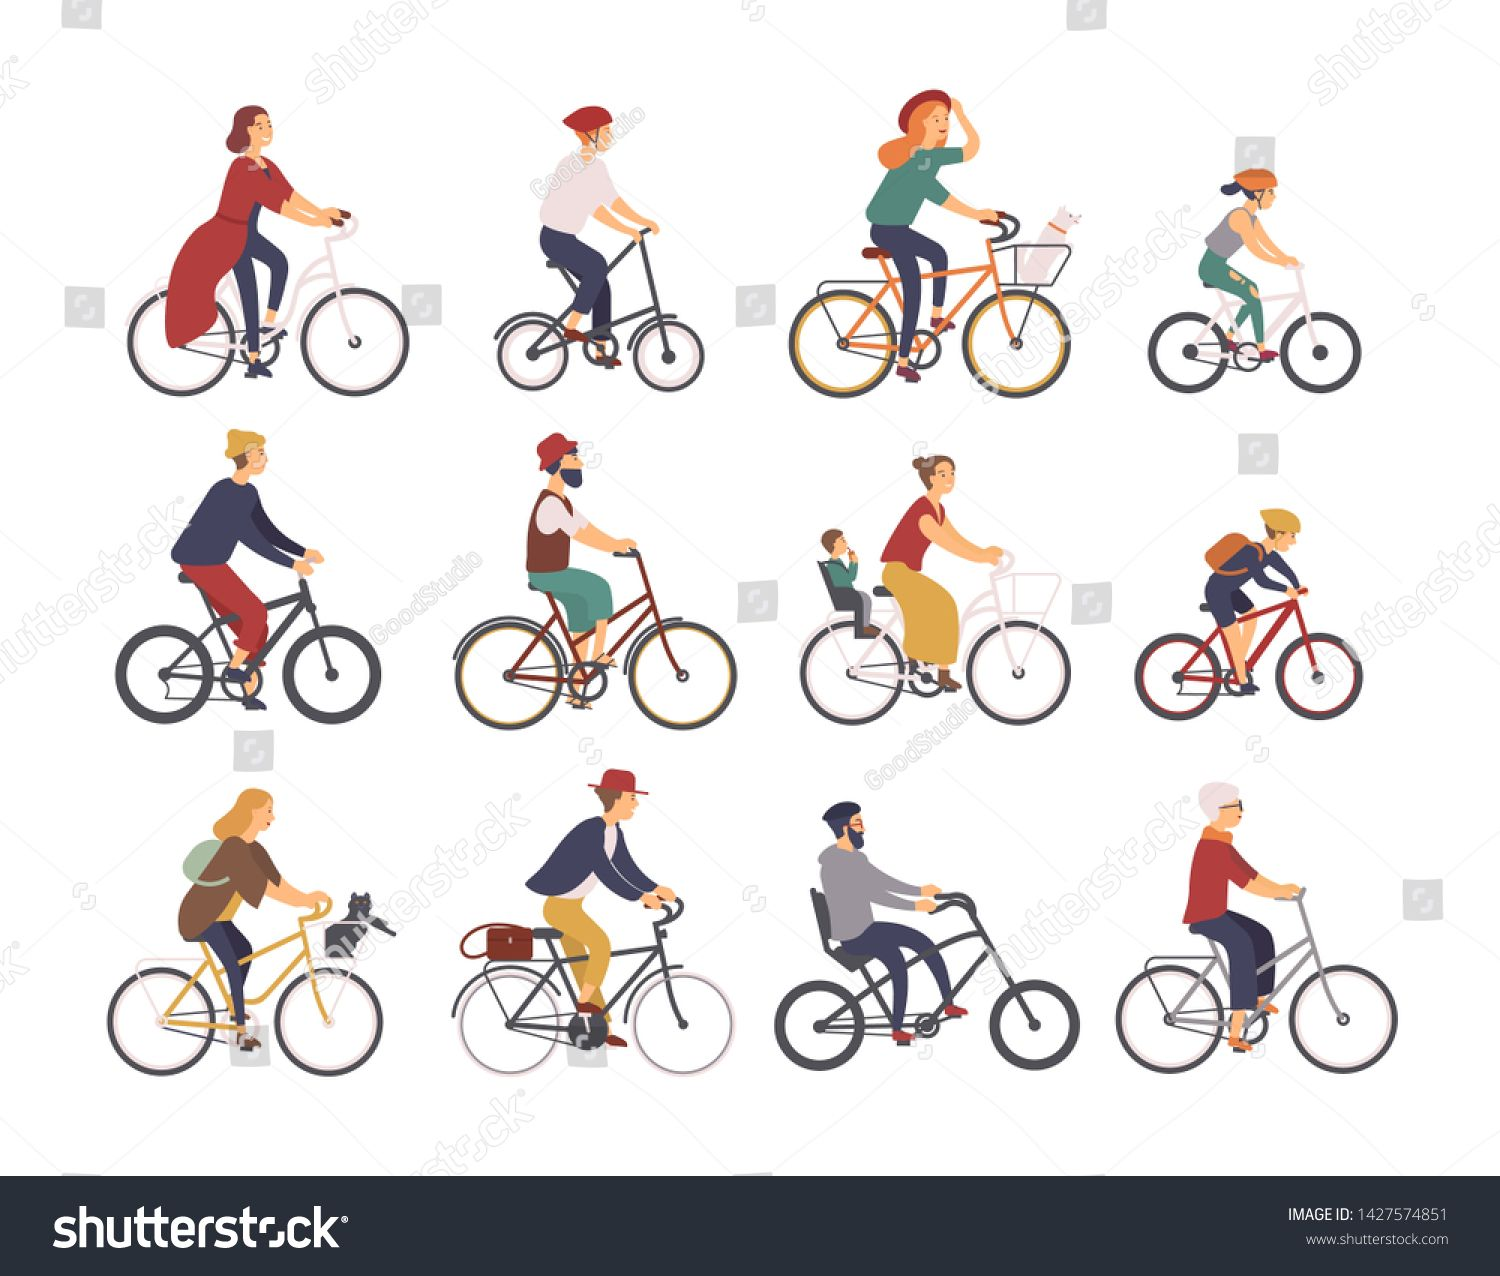 Collection Of People Riding Bicycles Of Various Types City Bmx